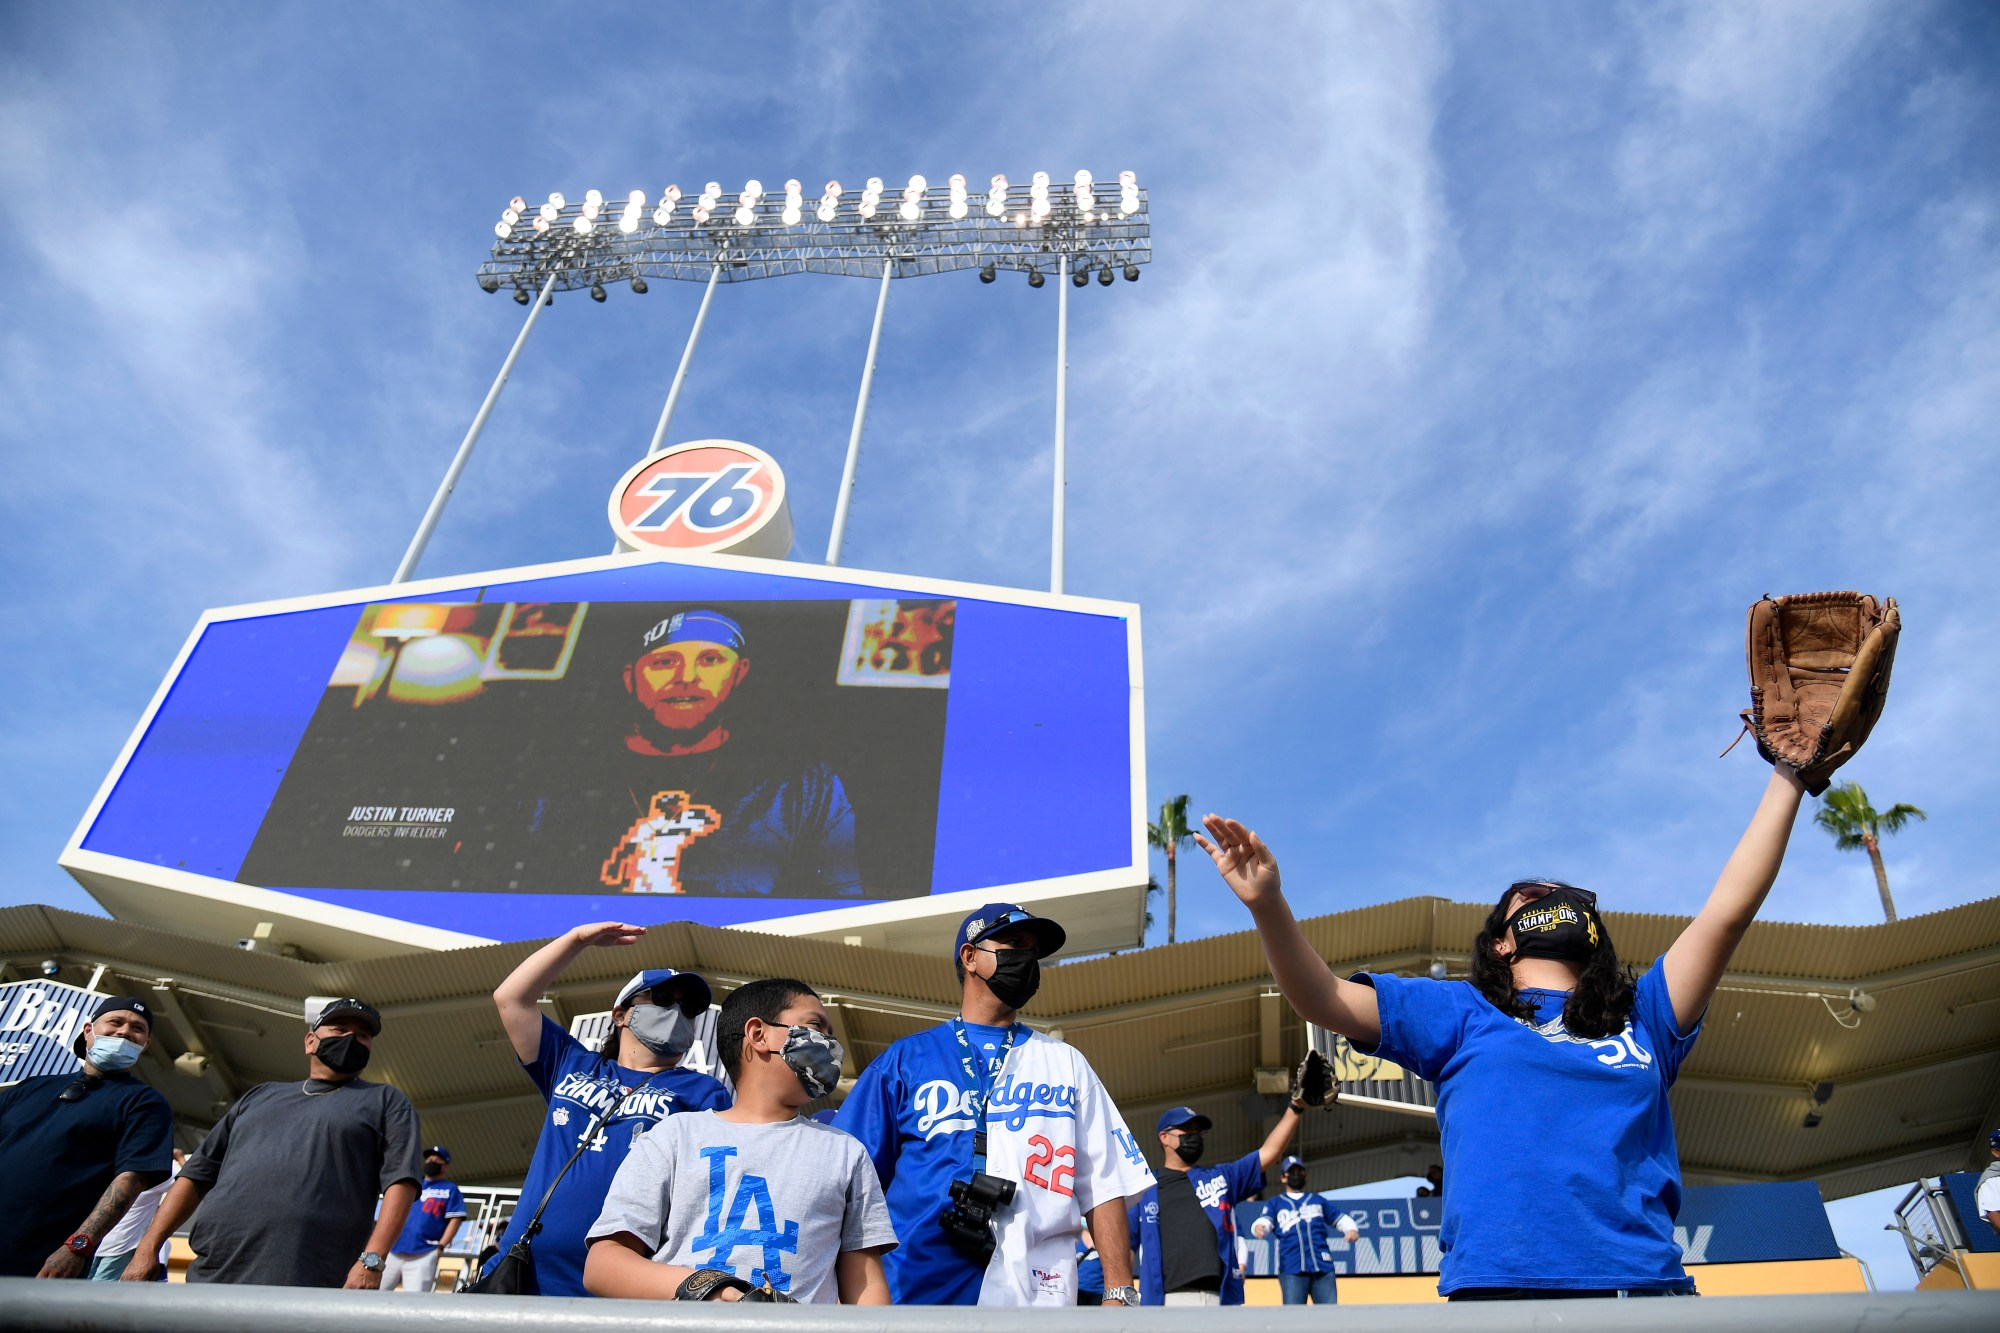 Fans watch homeruns at batting practice before the game between the Washington Nationals and Los Angeles Dodgers at Dodger Stadium on April 10, 2021 in Los Angeles, California. (Harry How/Getty Images)